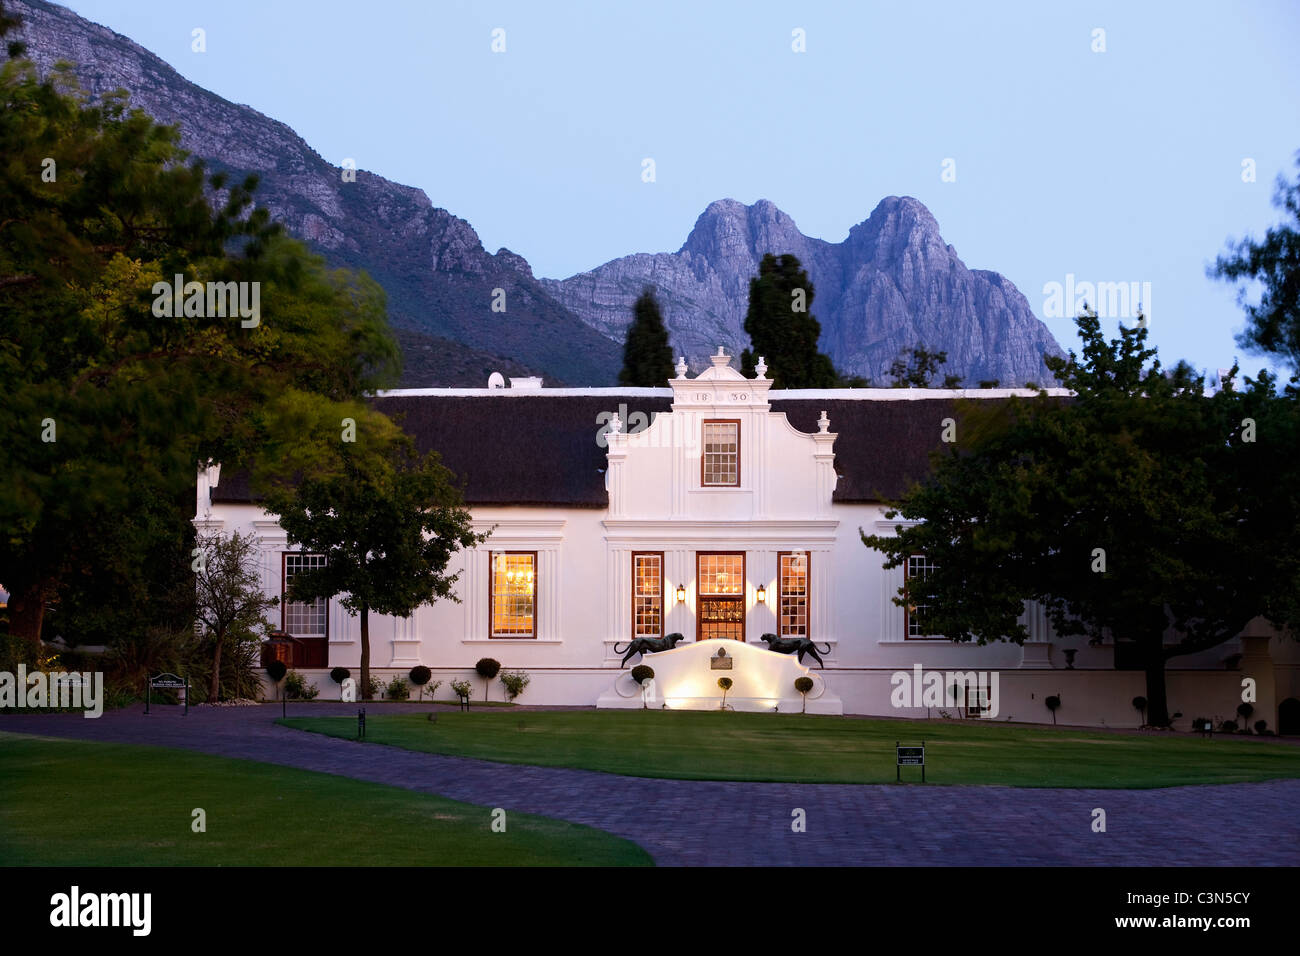 South Africa, Western Cape, Stellenbosch. Hotel and wine estate Lanzerac. Sunset. - Stock Image